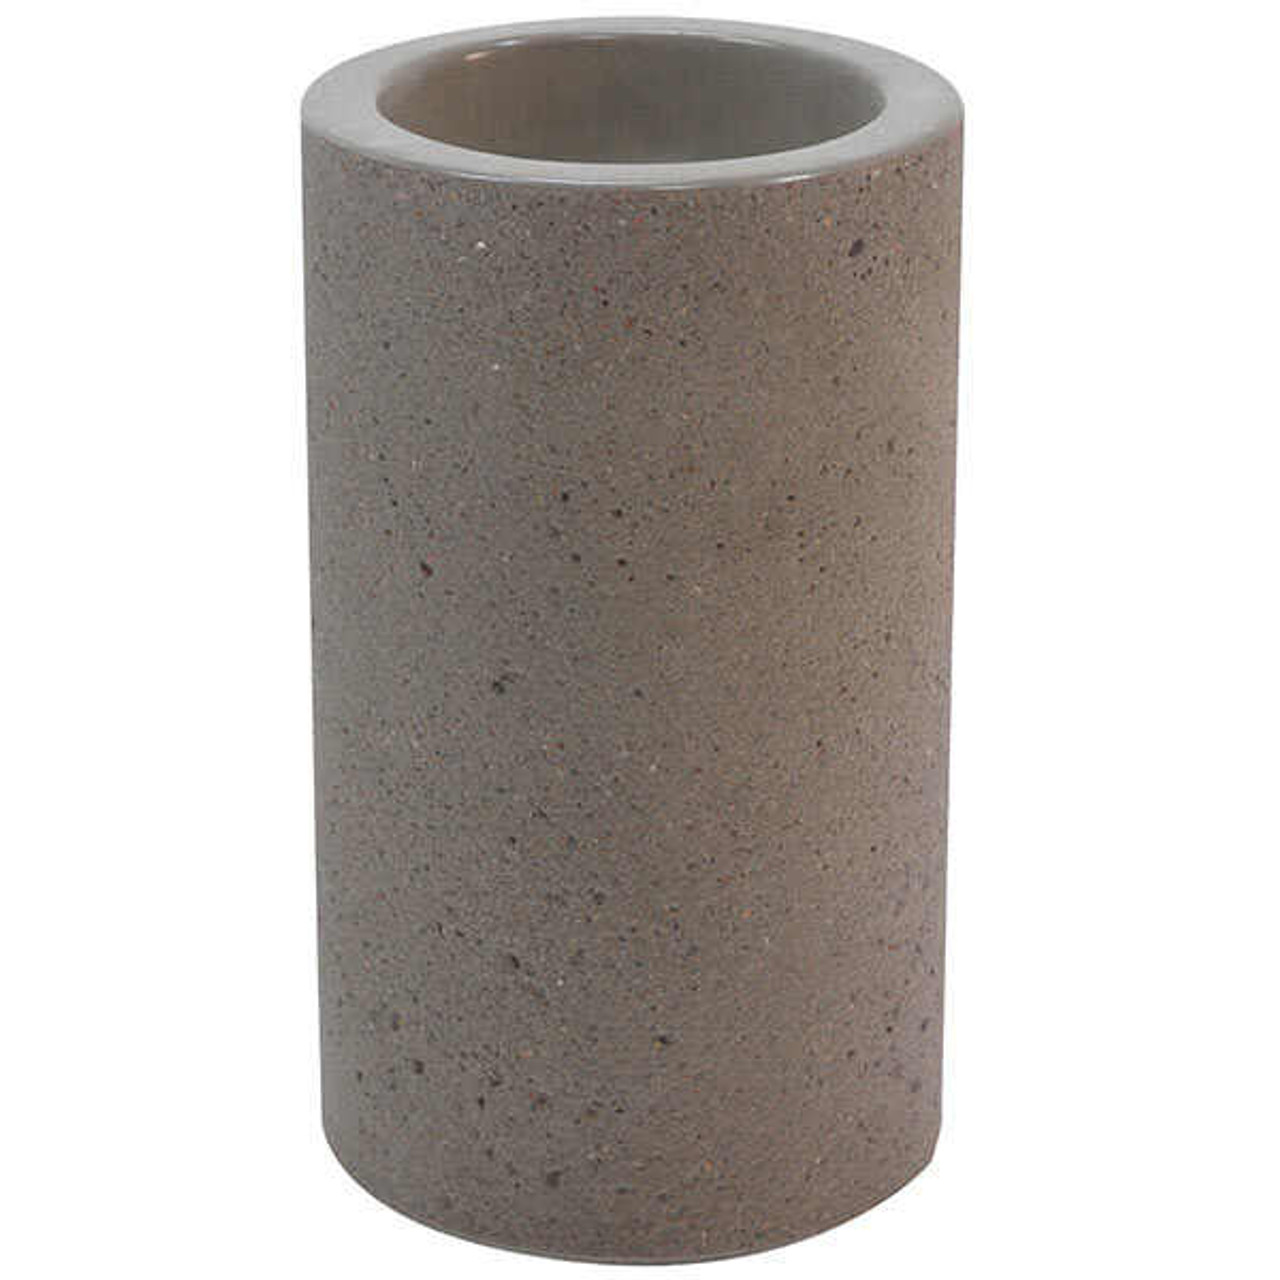 Concrete Ash Urn Outdoor Ashtray Smokers Receptacle TF2000